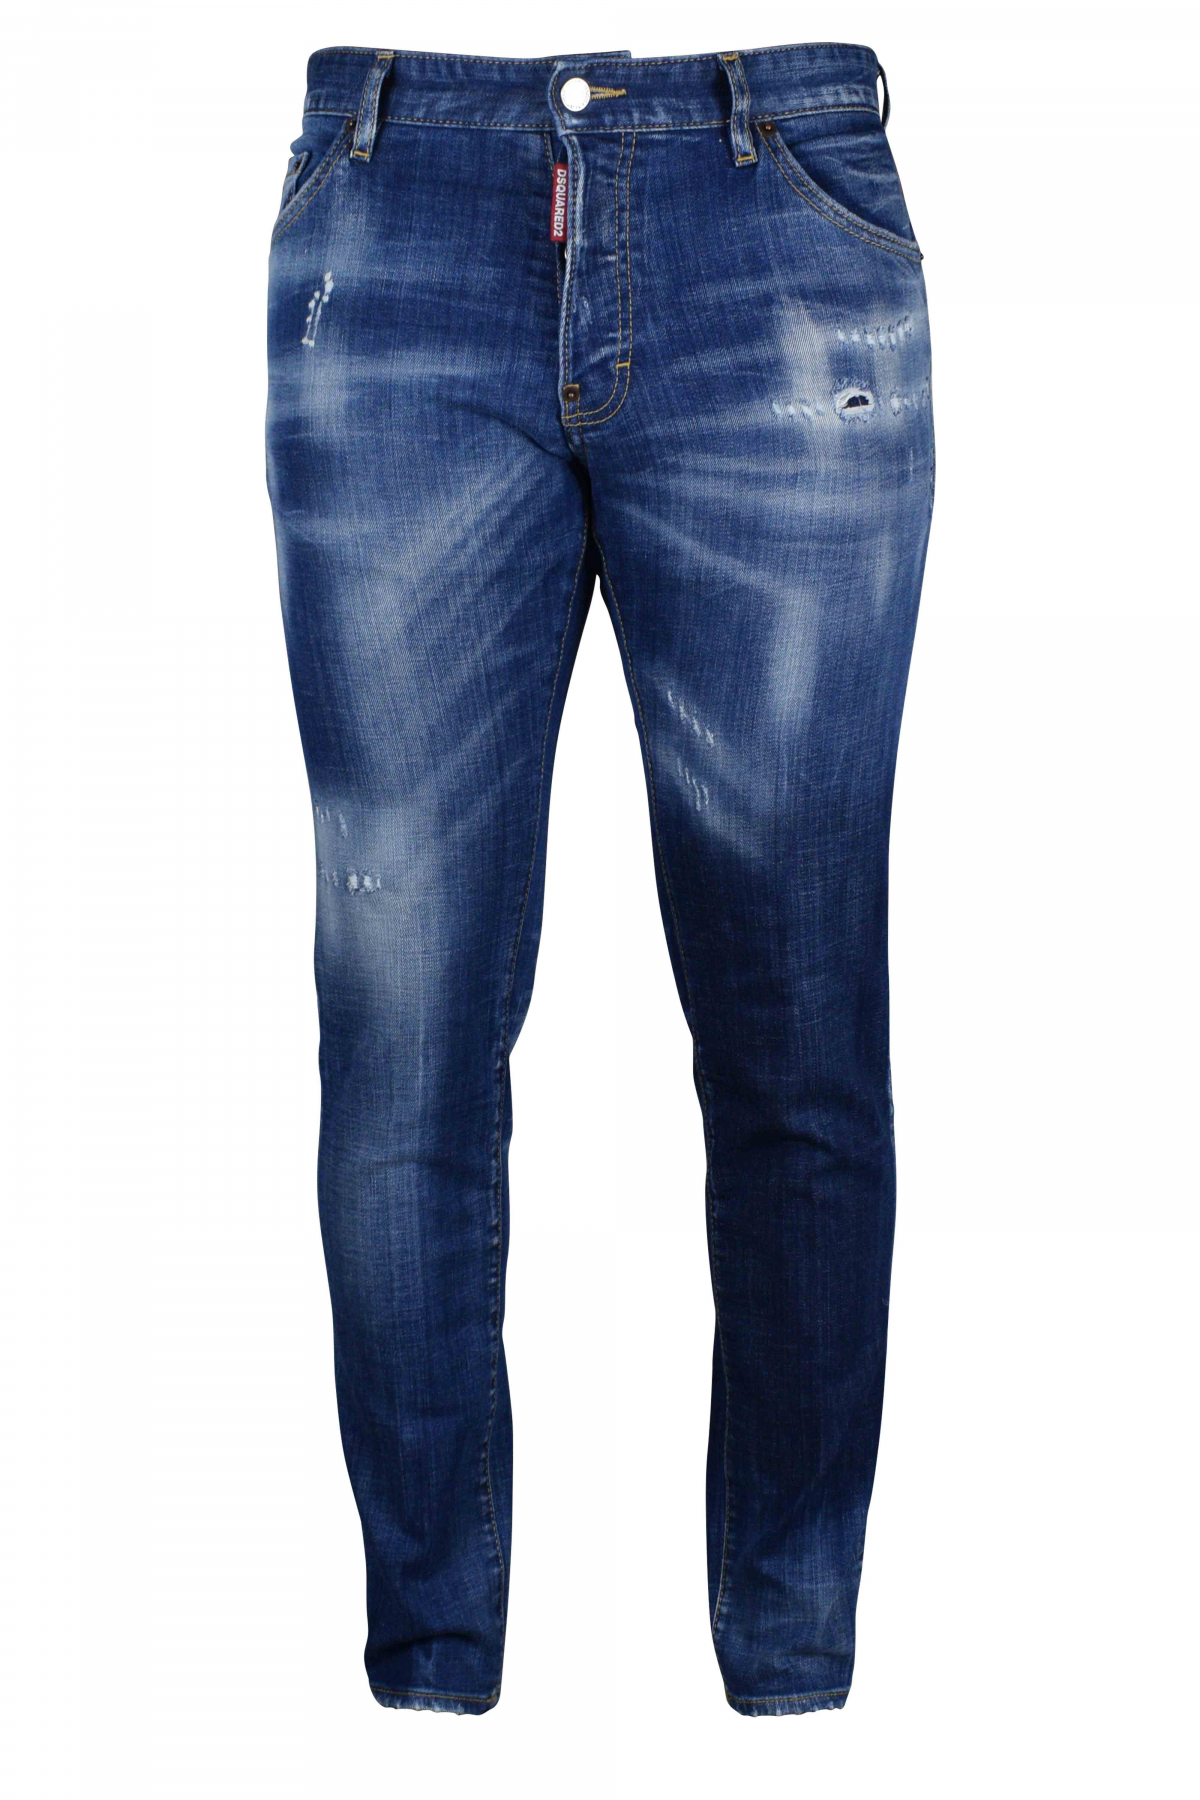 Cool Guy Jean Dsquared2 blue ripped effect.